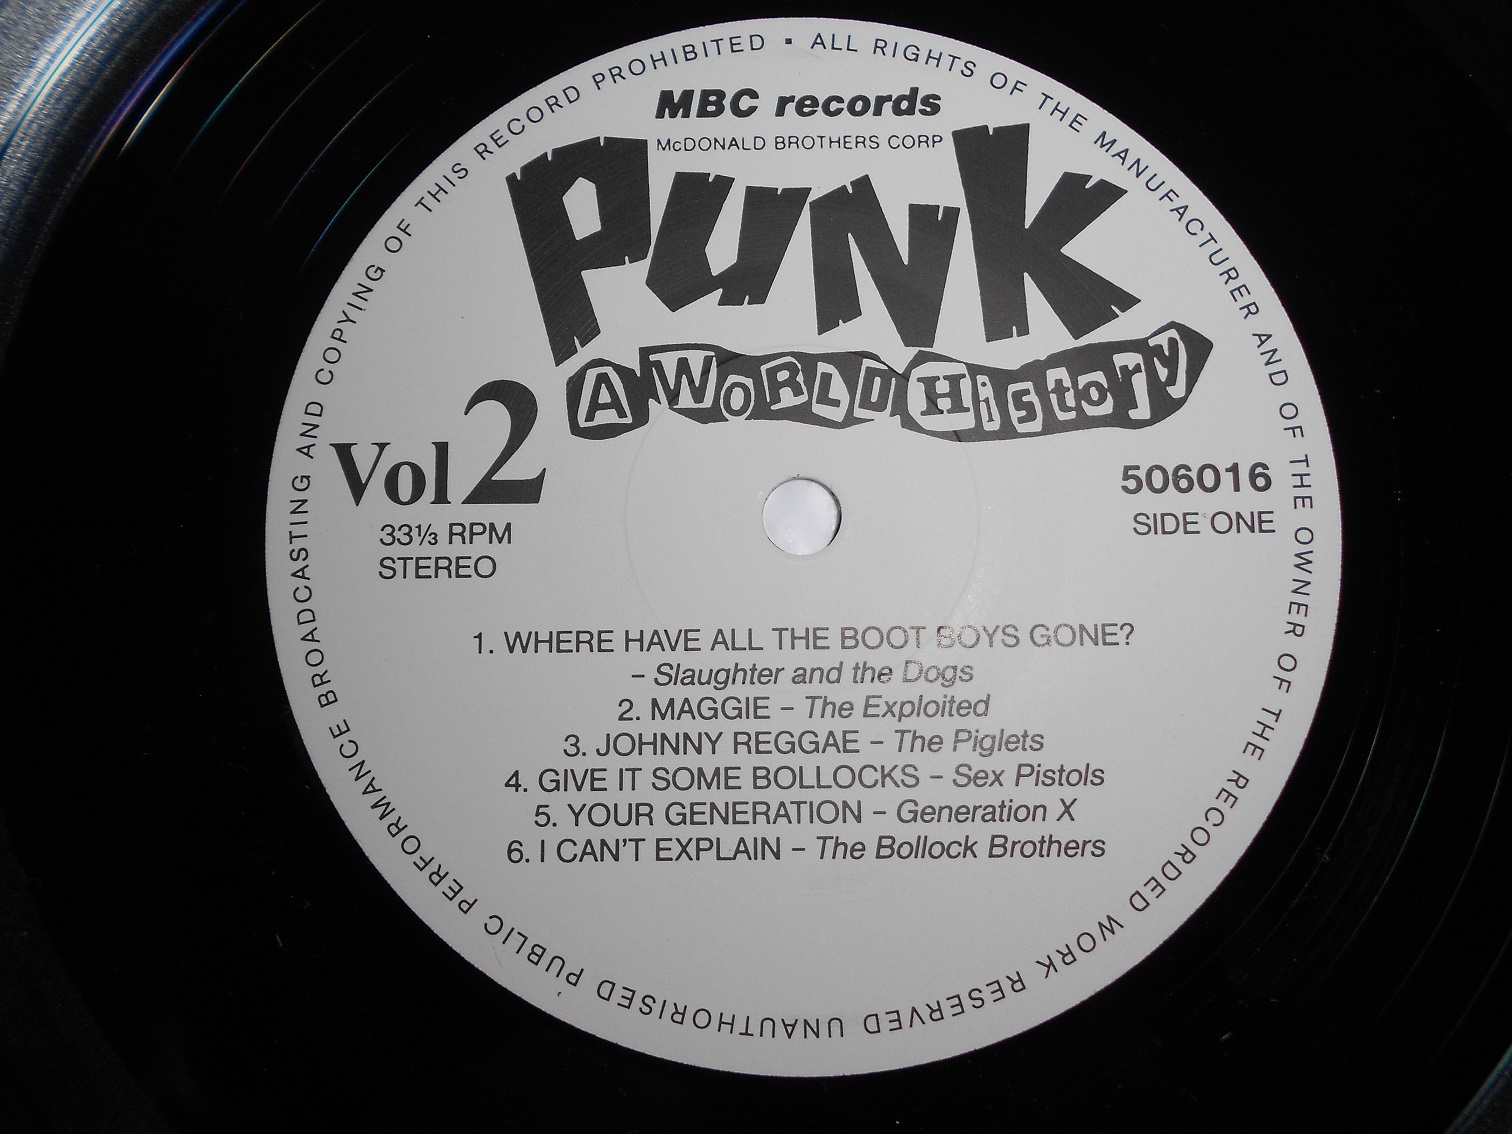 V/A - Punk - A World History Volume 2